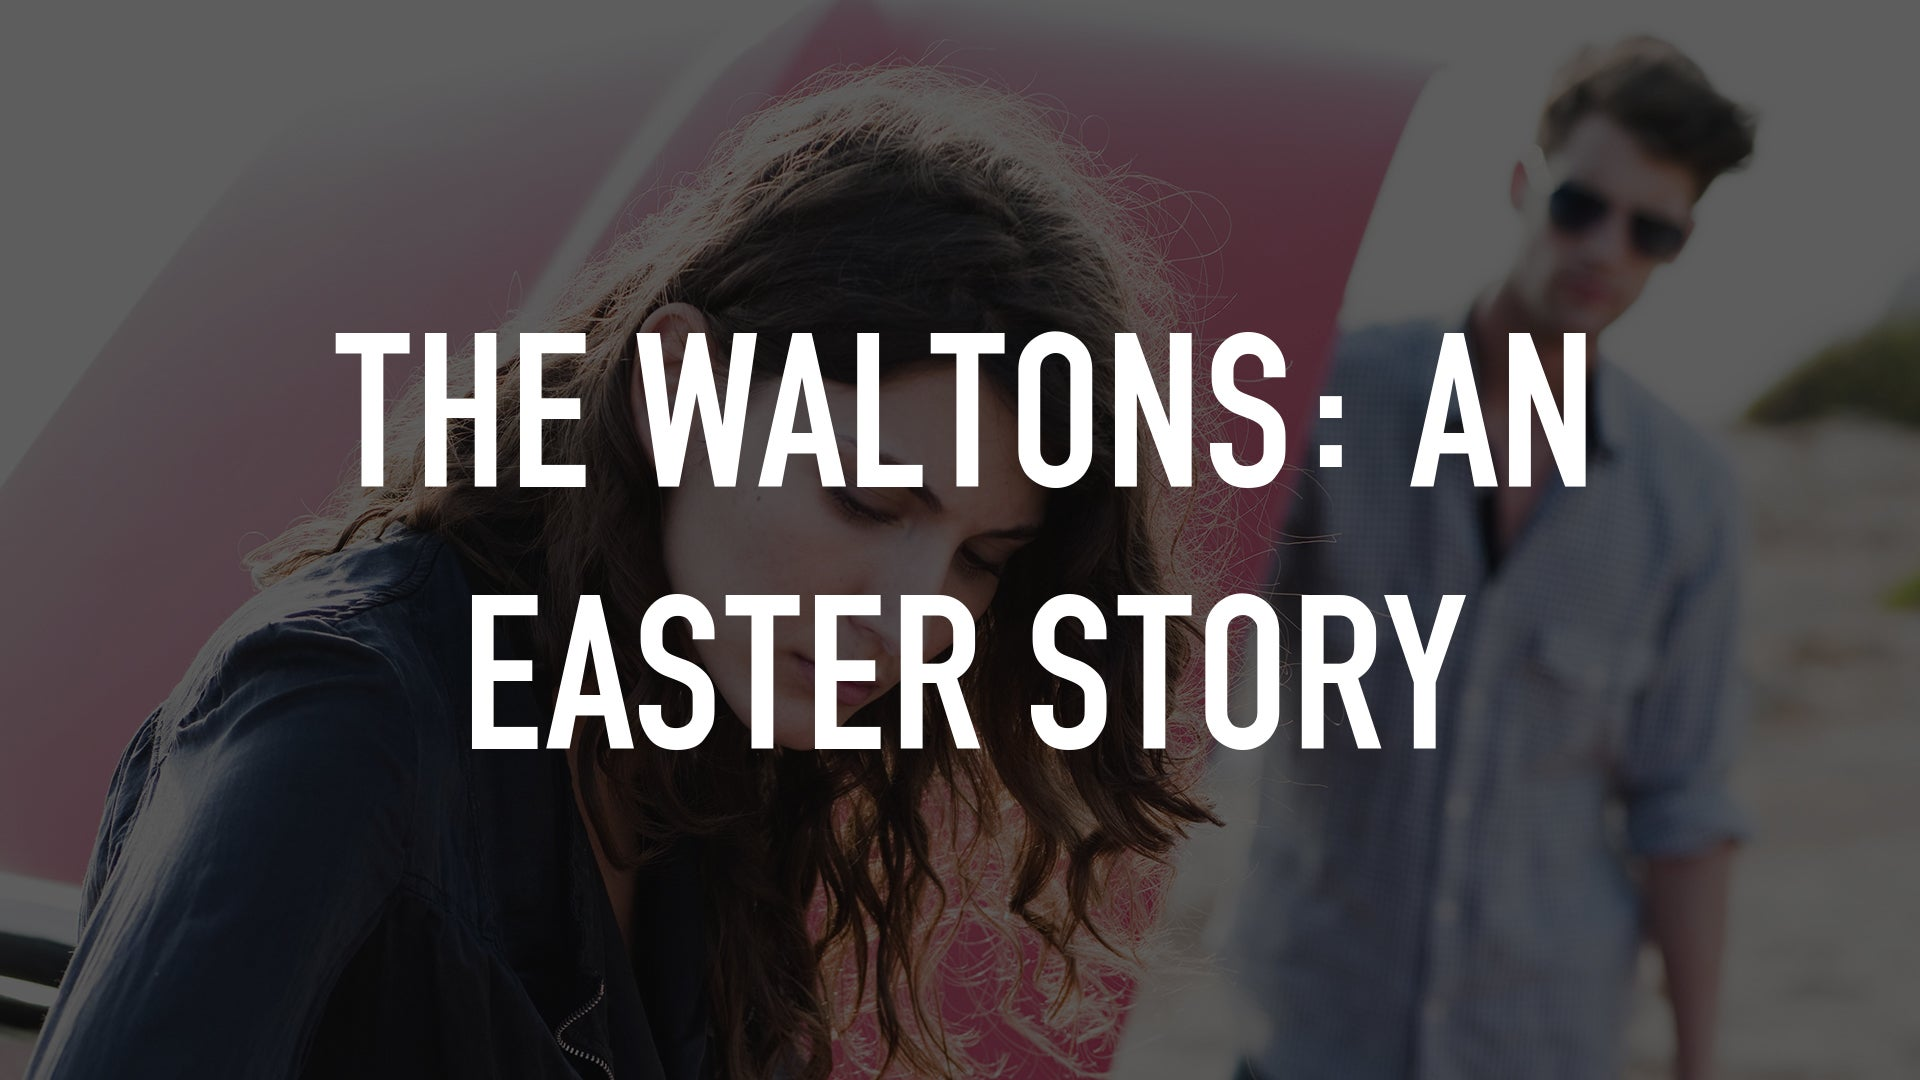 The Waltons: An Easter Story